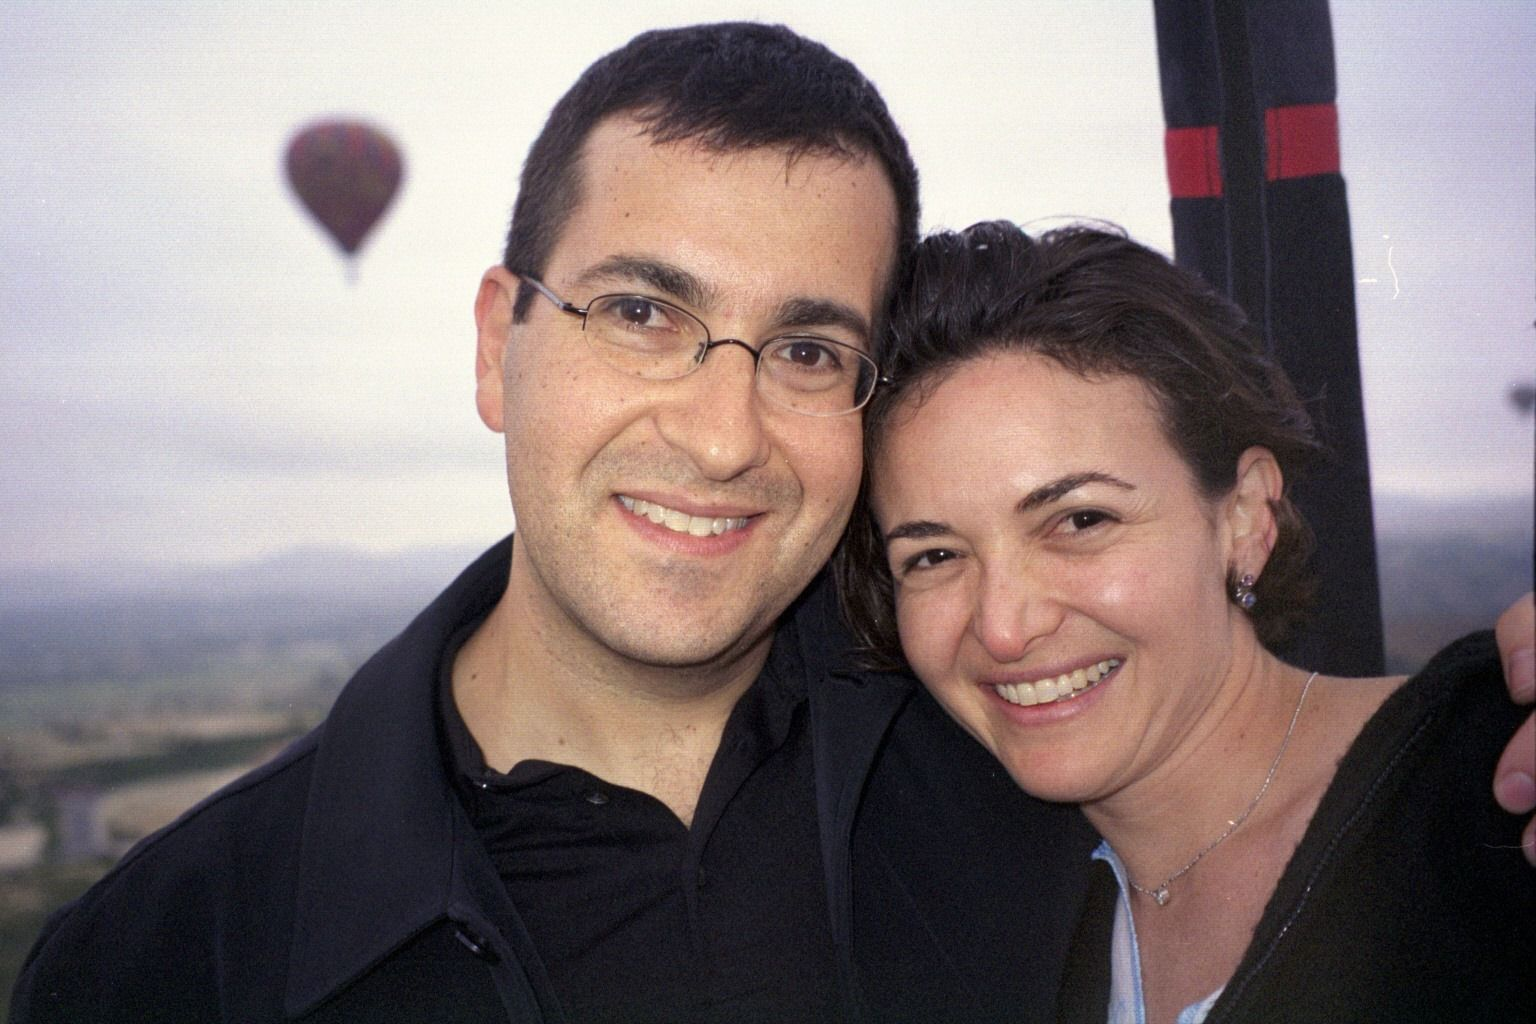 Dave Goldberg and Sheryl Sandberg, posted to her Facebook page.